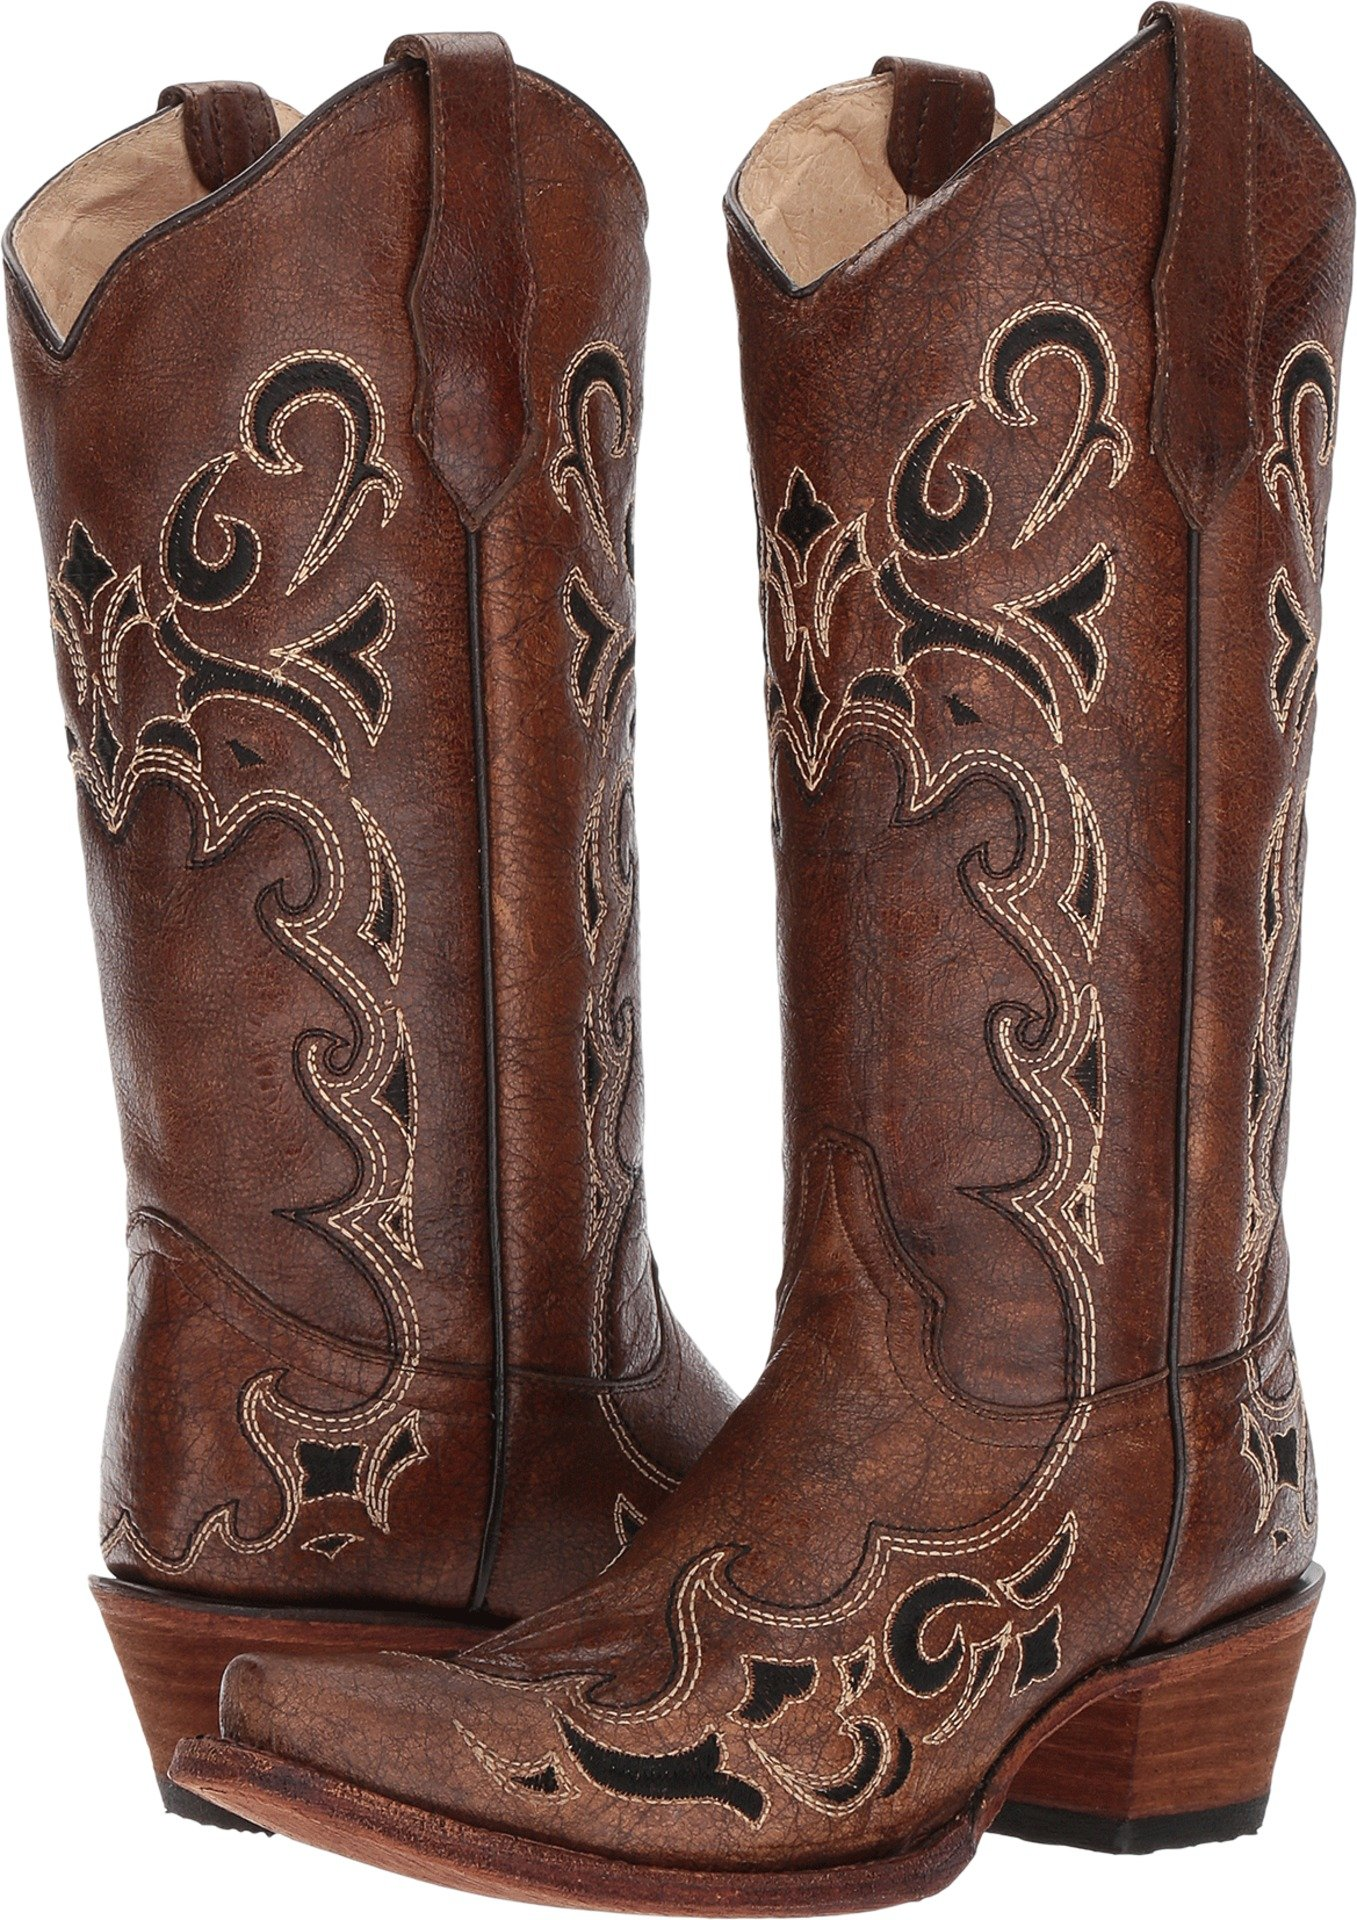 Corral Boots Women's L5247 Black/Brown Boot